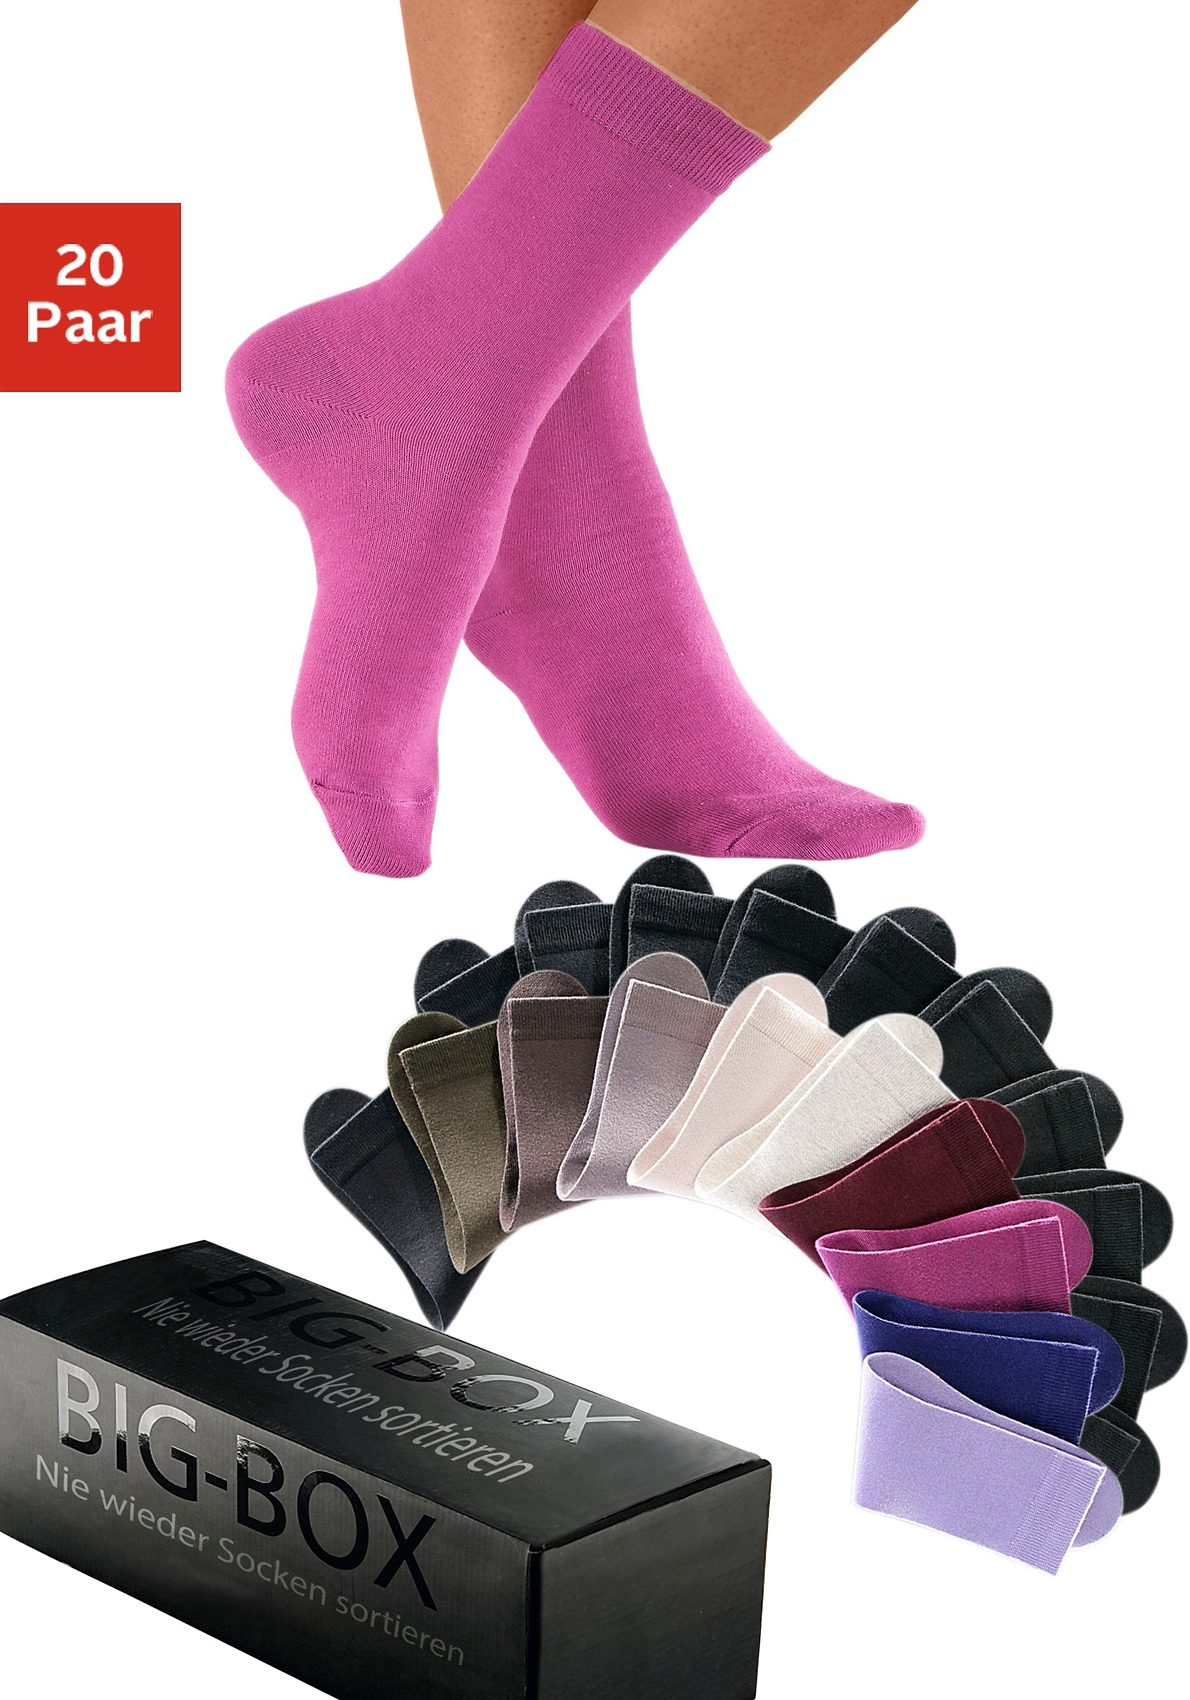 Basic-Socken im Multipack (20 Paar) in der Big-Box